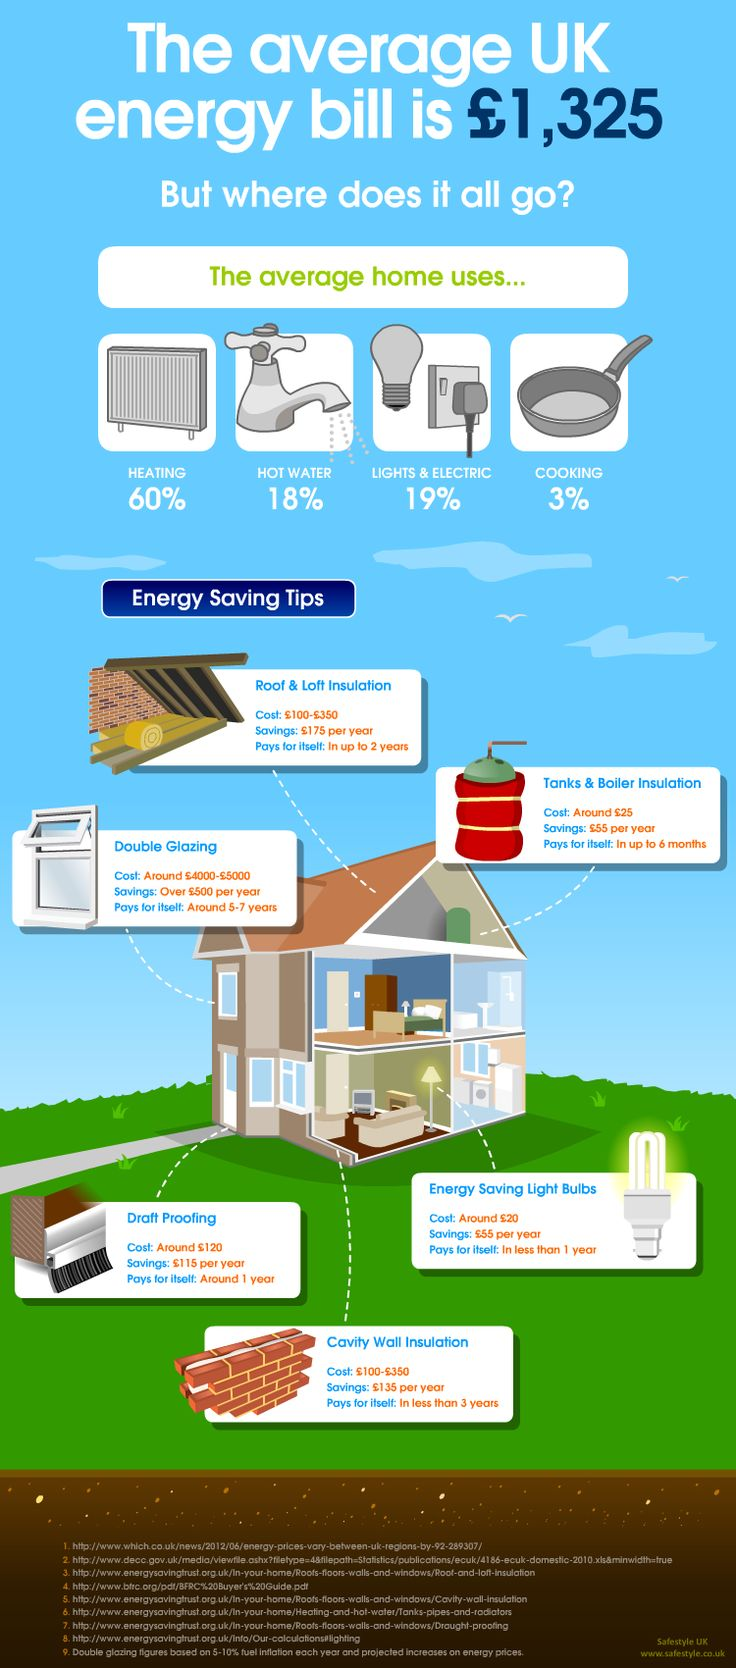 38 best energy efficiency creative ideas images on for Cost saving ideas for home